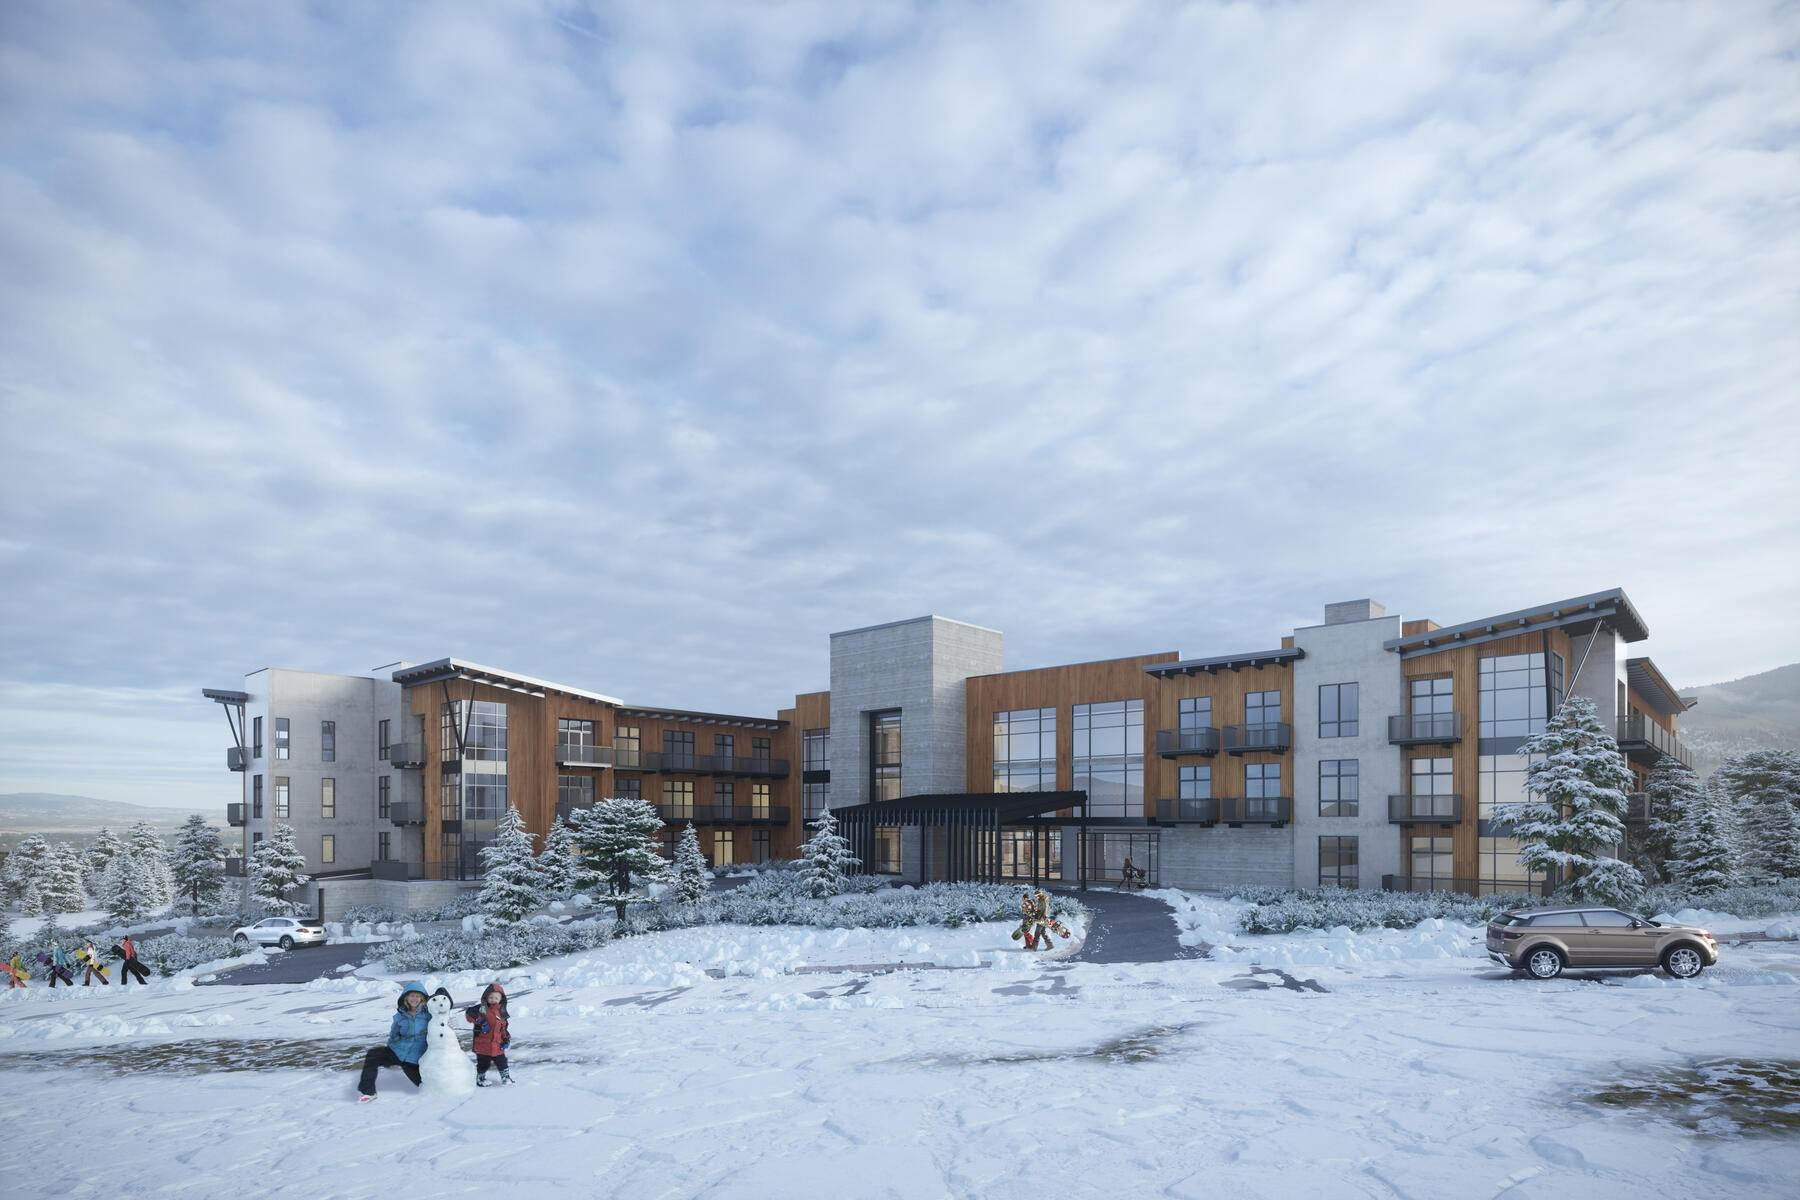 8. Condominiums for Sale at Introducing Park City's Newest Boutique Ski Hotel, The Ascent Park City! 4080 N Cooper Lane #312 Park City, Utah 84098 United States